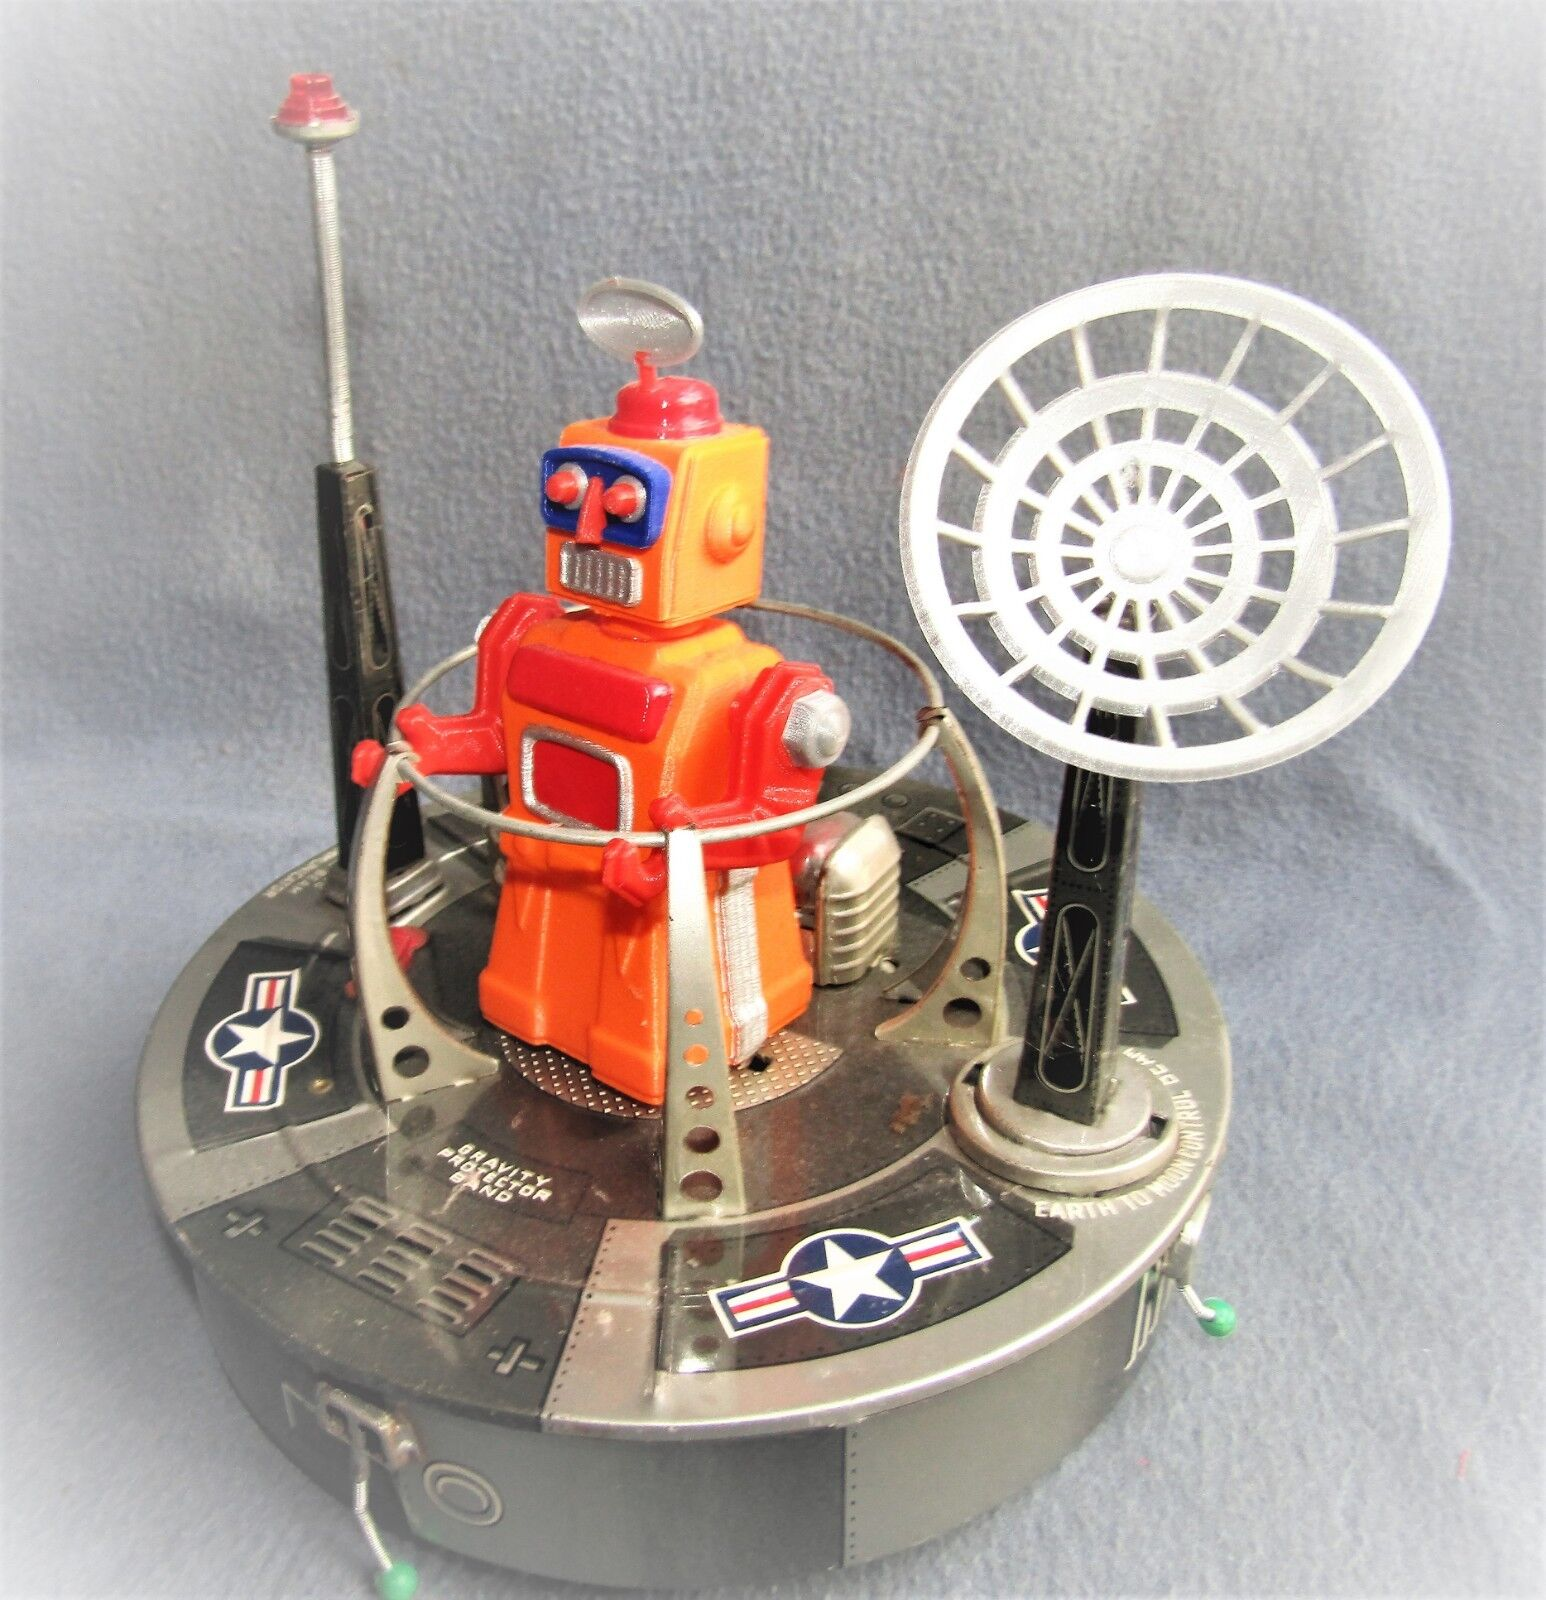 INTERPLANETARY SPACE PLATFORM 1960's JAPAN by LINEMAR Co. EX / WORKING